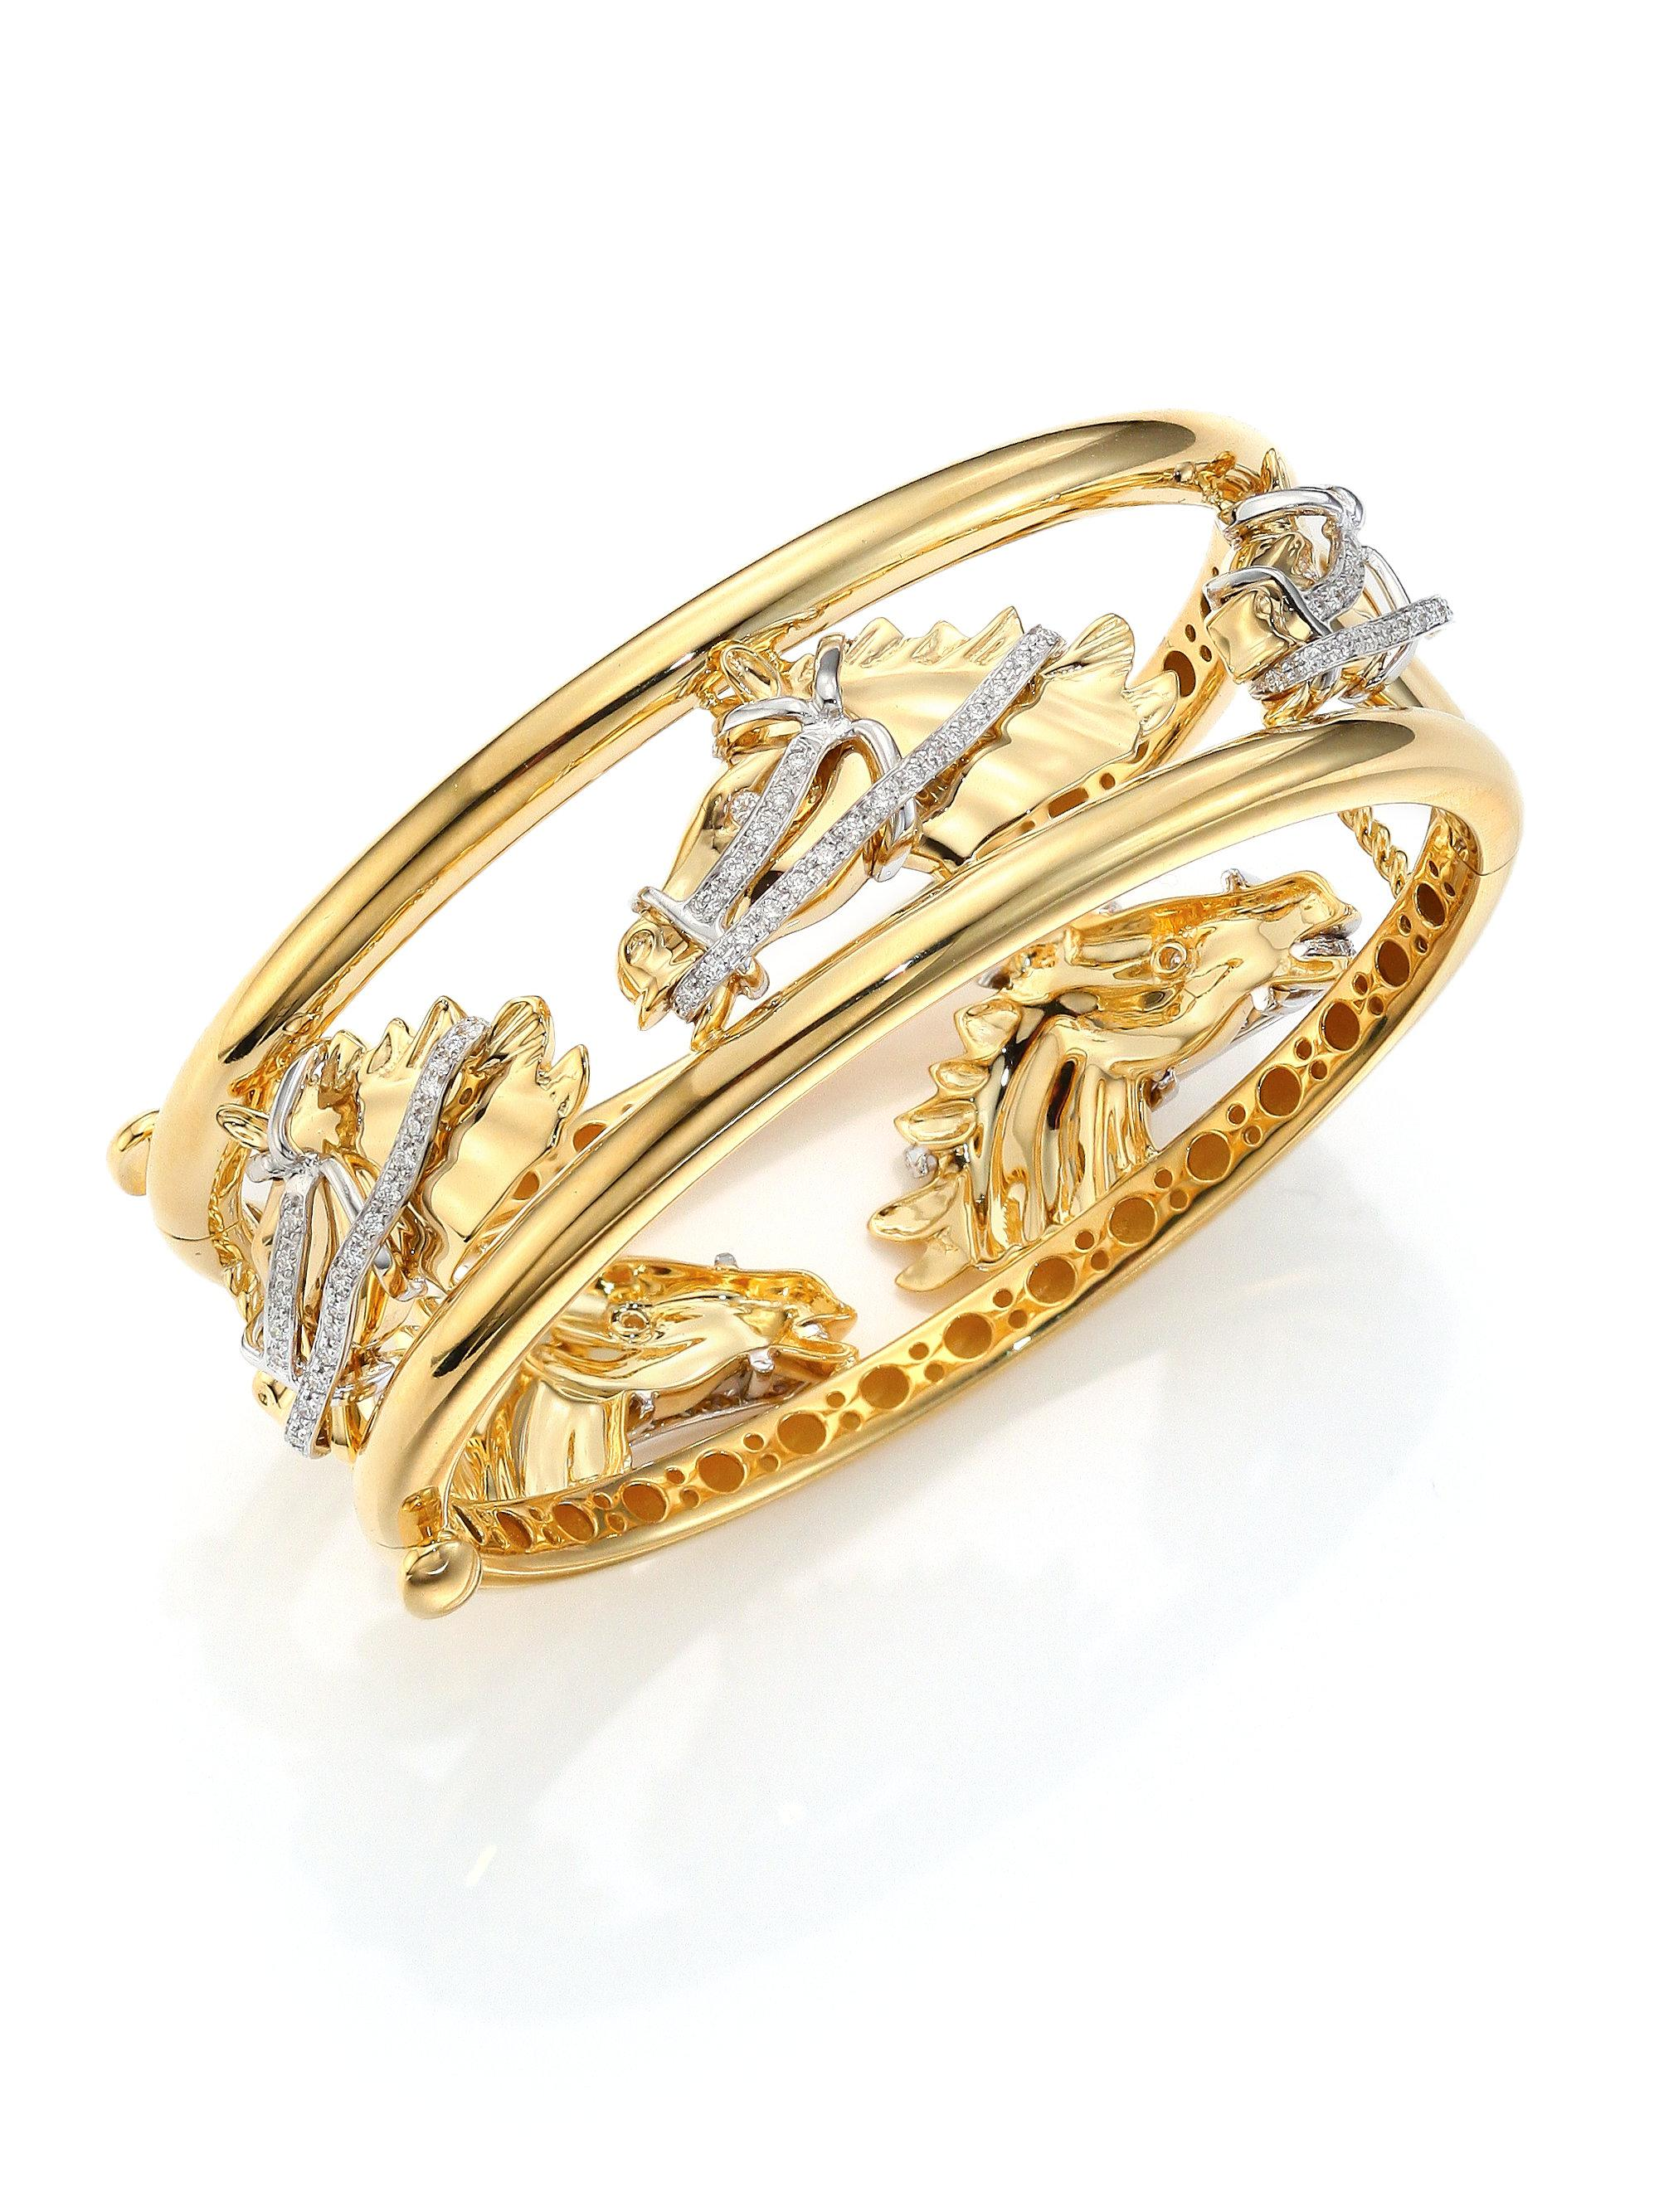 bangles london yellow diamond gold collection bracelet baguette bangle